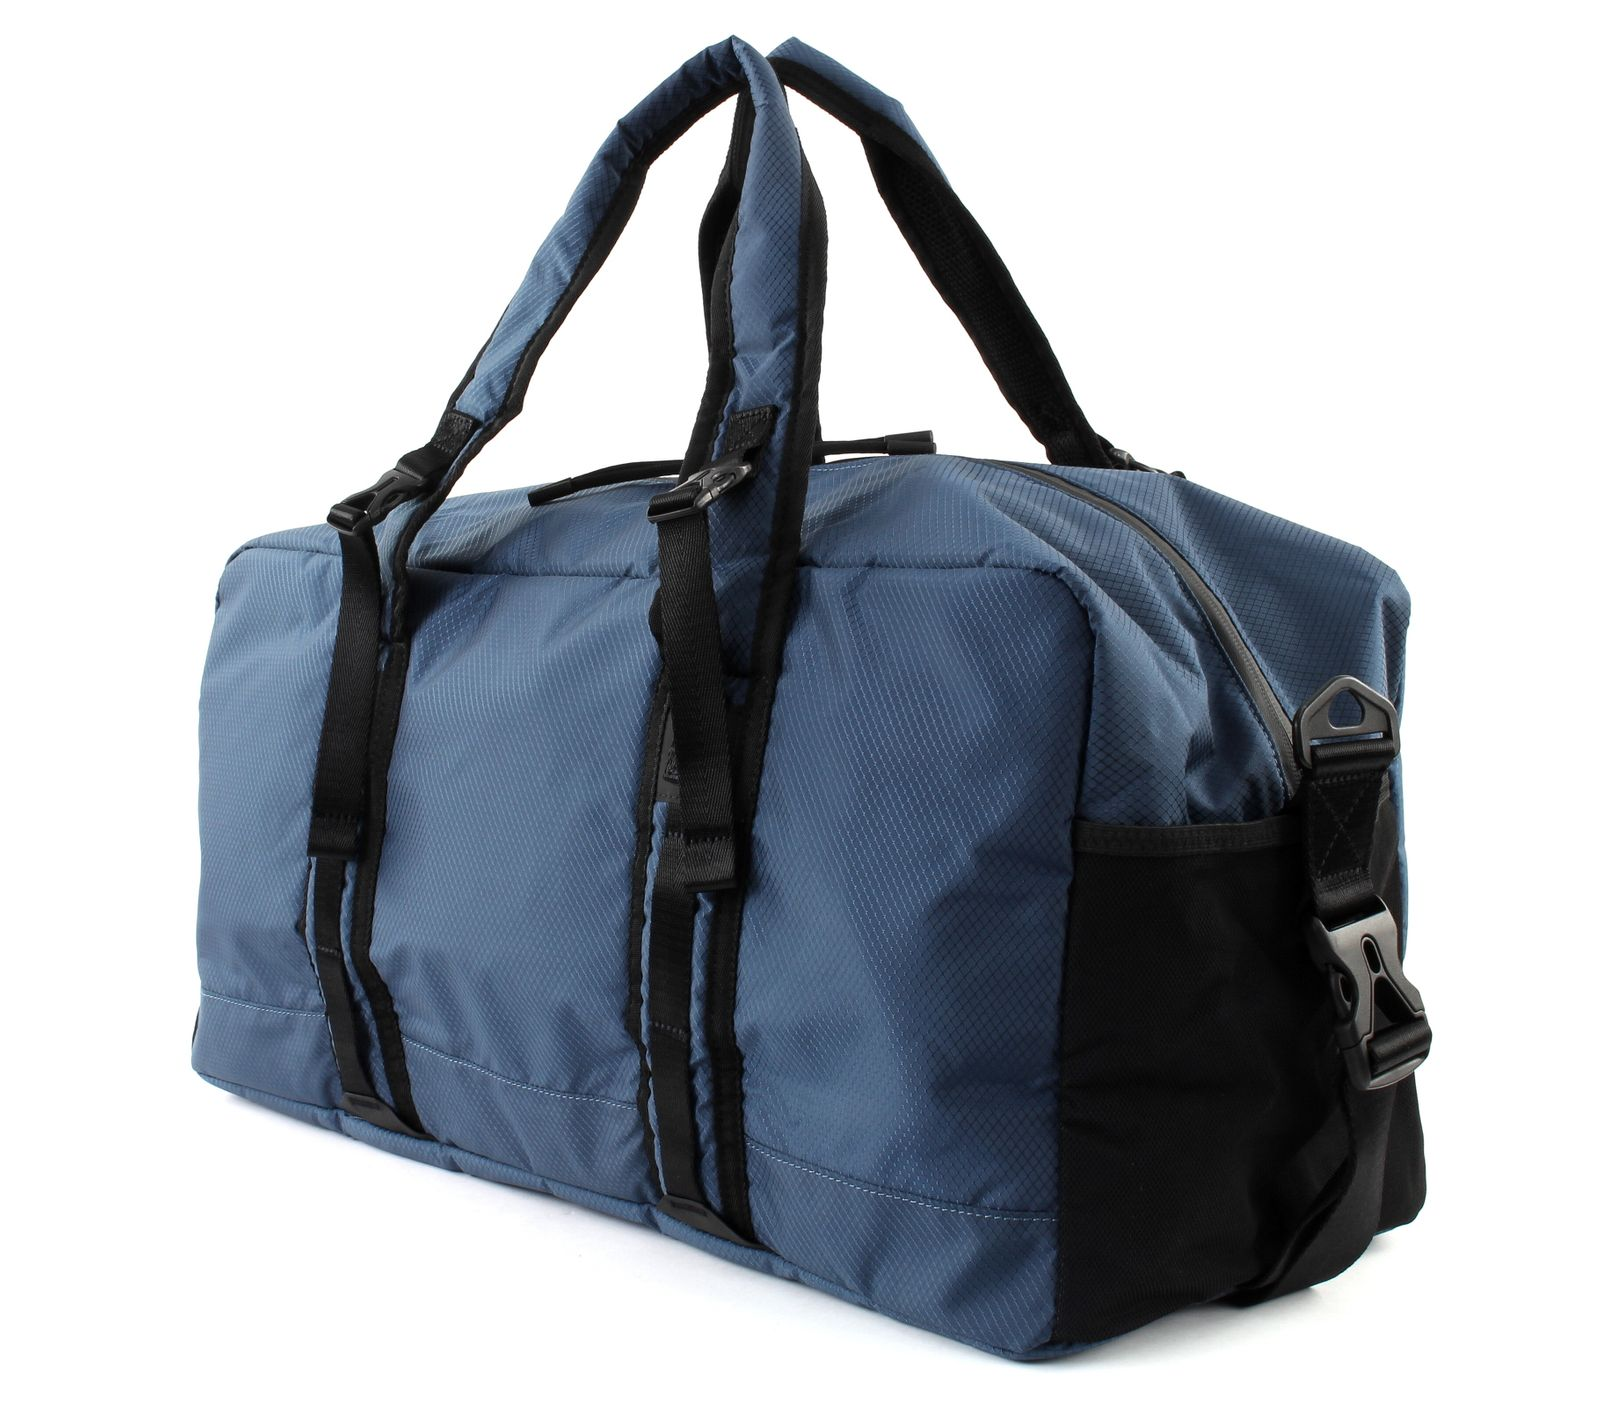 d606323f30a8c LACOSTE Match Point Gym Bag Majolica Blue Black